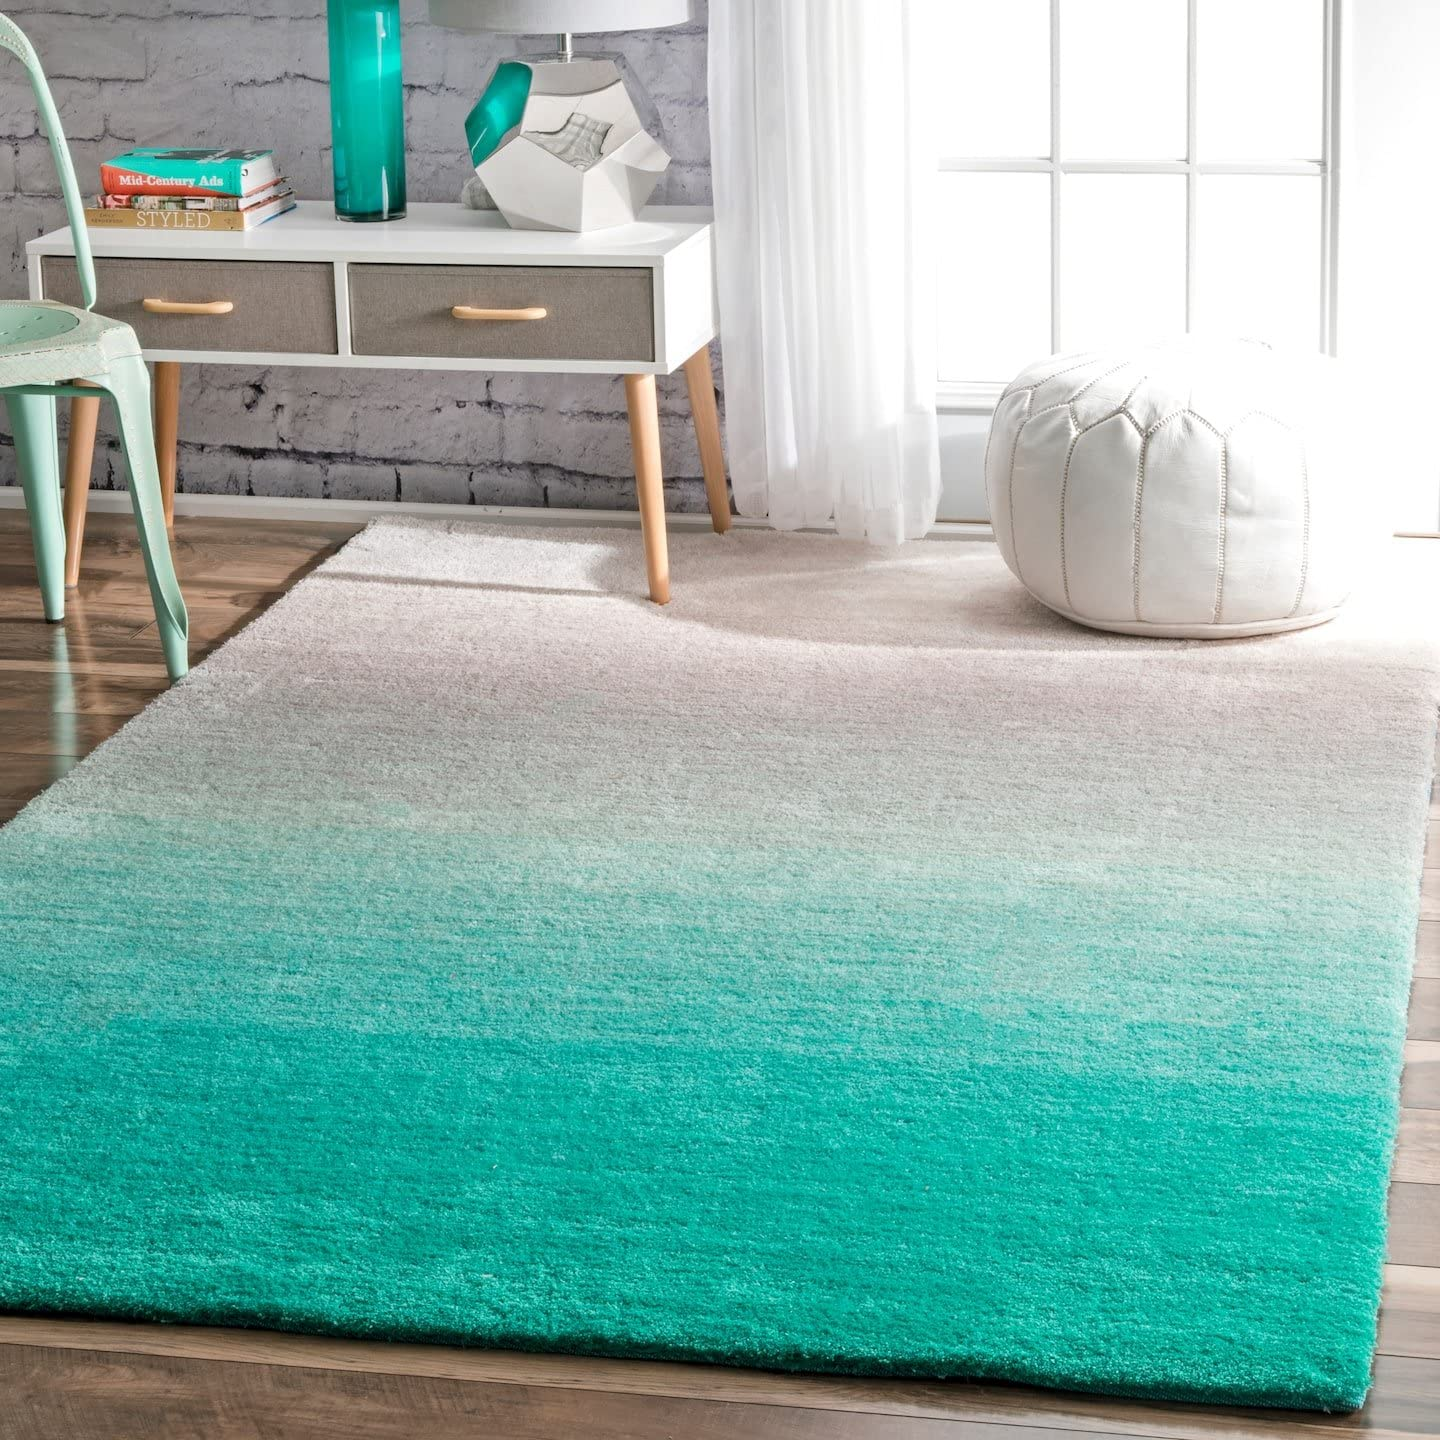 nuLOOM Ariel Ombre Shag Rug, 9 x 12 , Turquoise